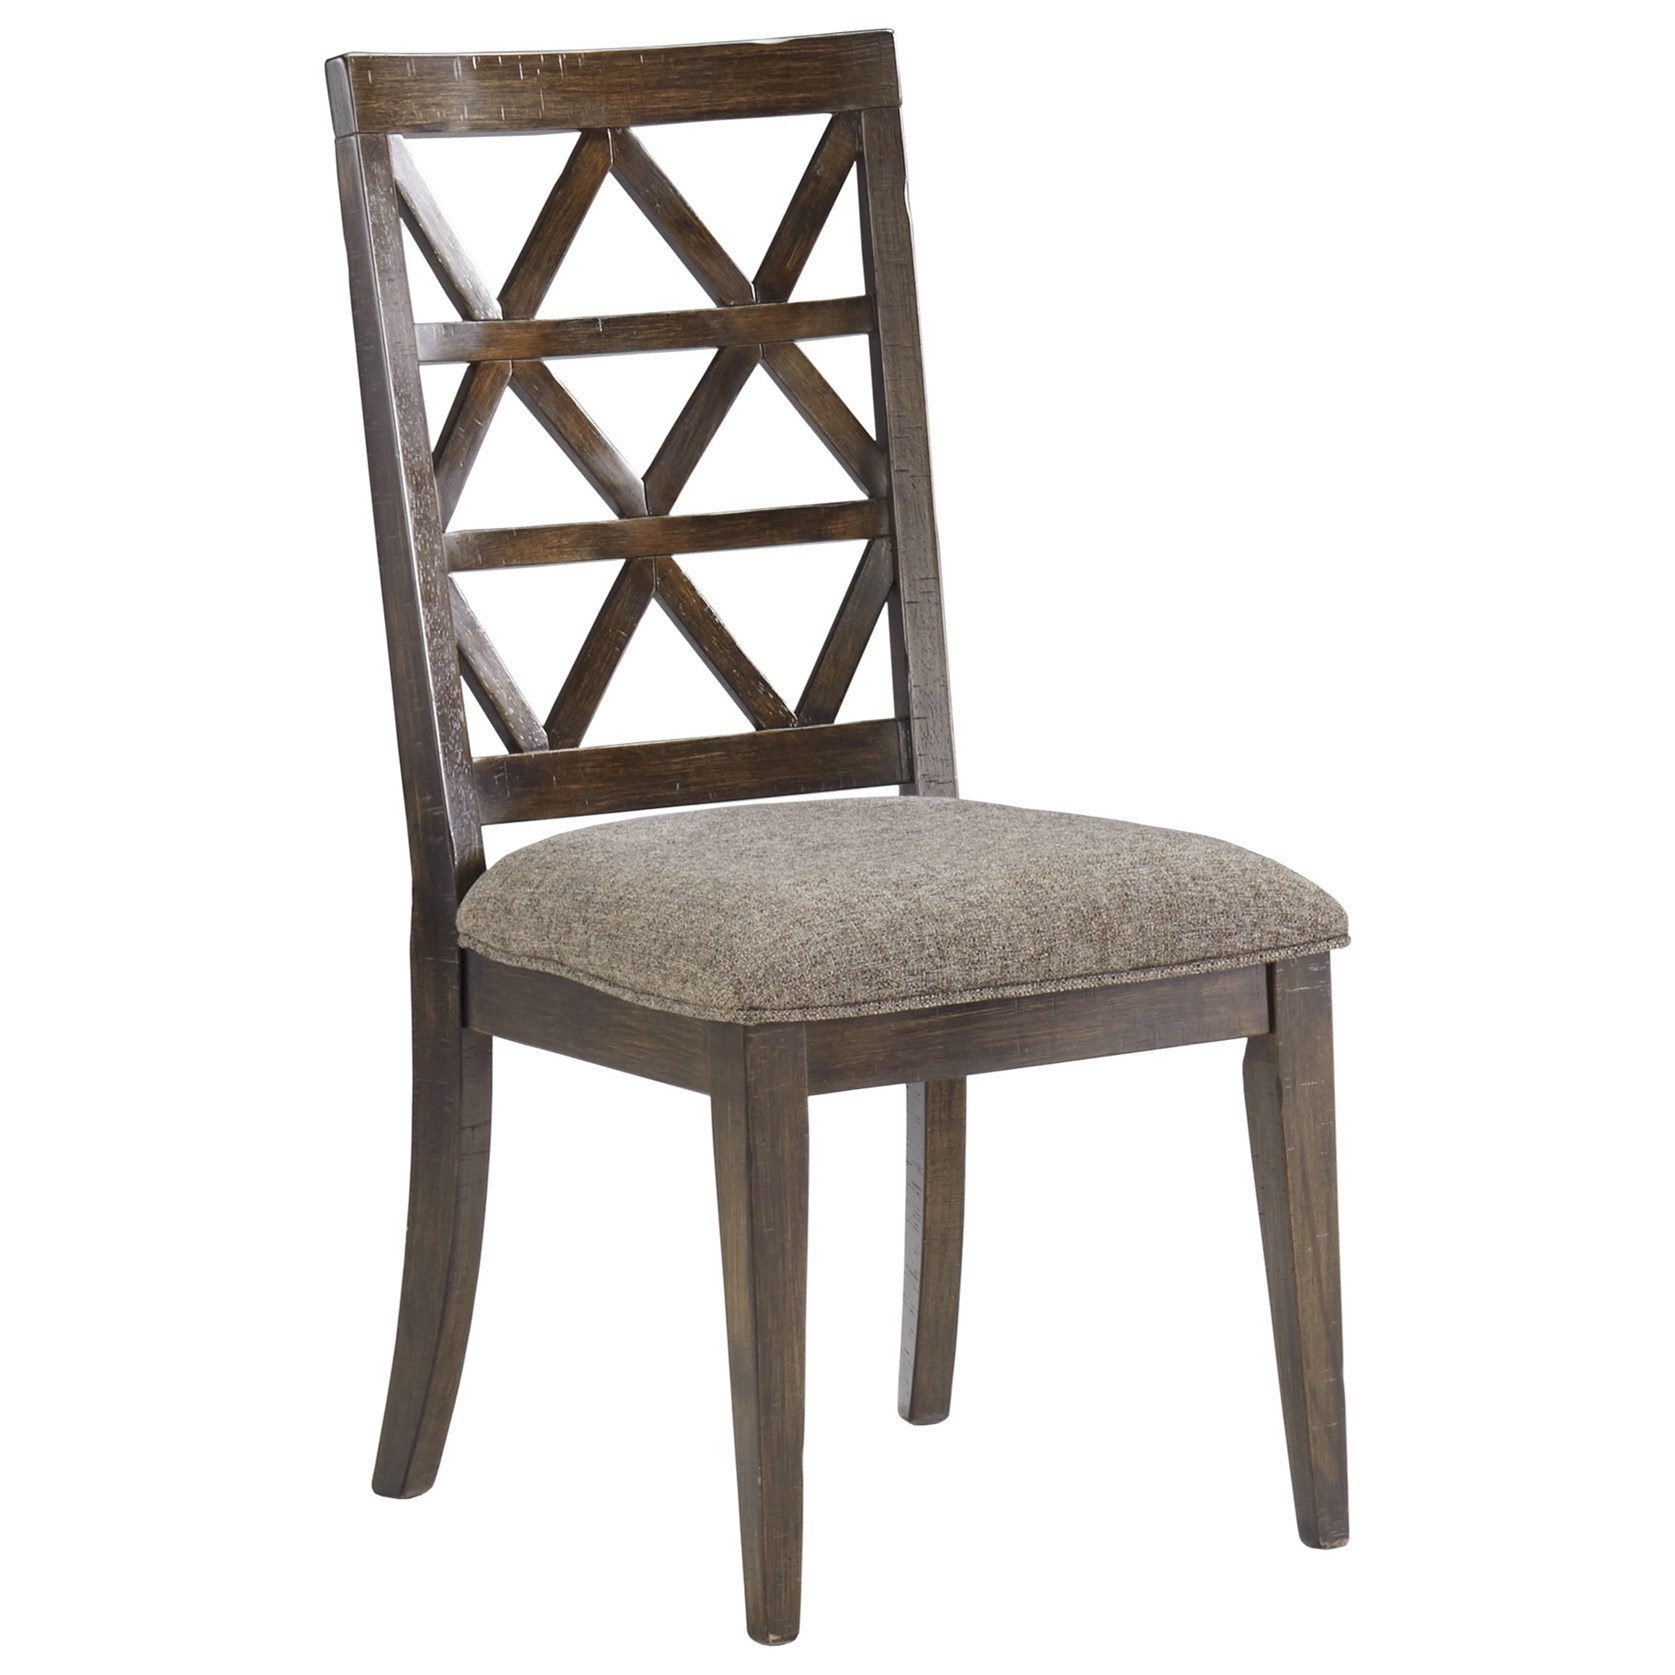 Signature Design by Ashley Devasheen Dining Upholstered Side Chair - Item Number: D687-01